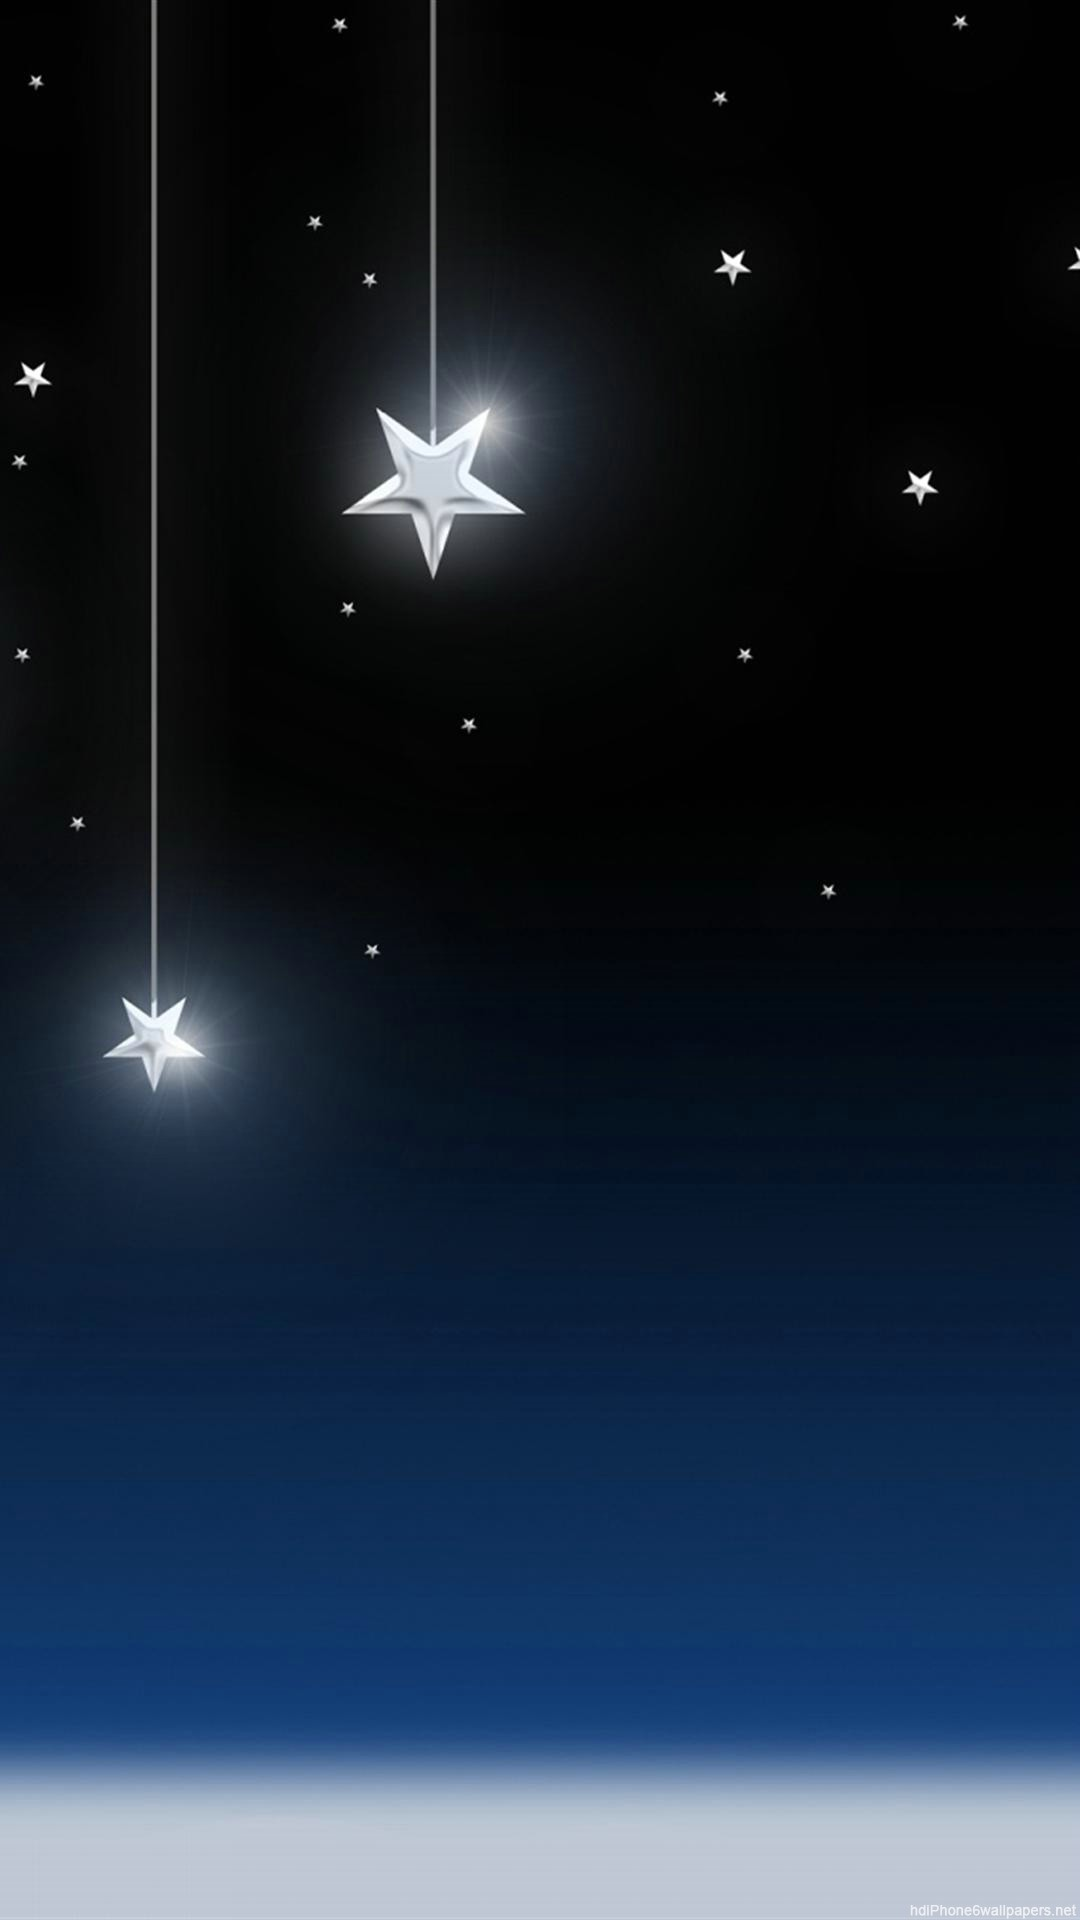 Iphone Ios 7 Animated Wallpaper Wallpapers Of Stars And Moon 74 Images